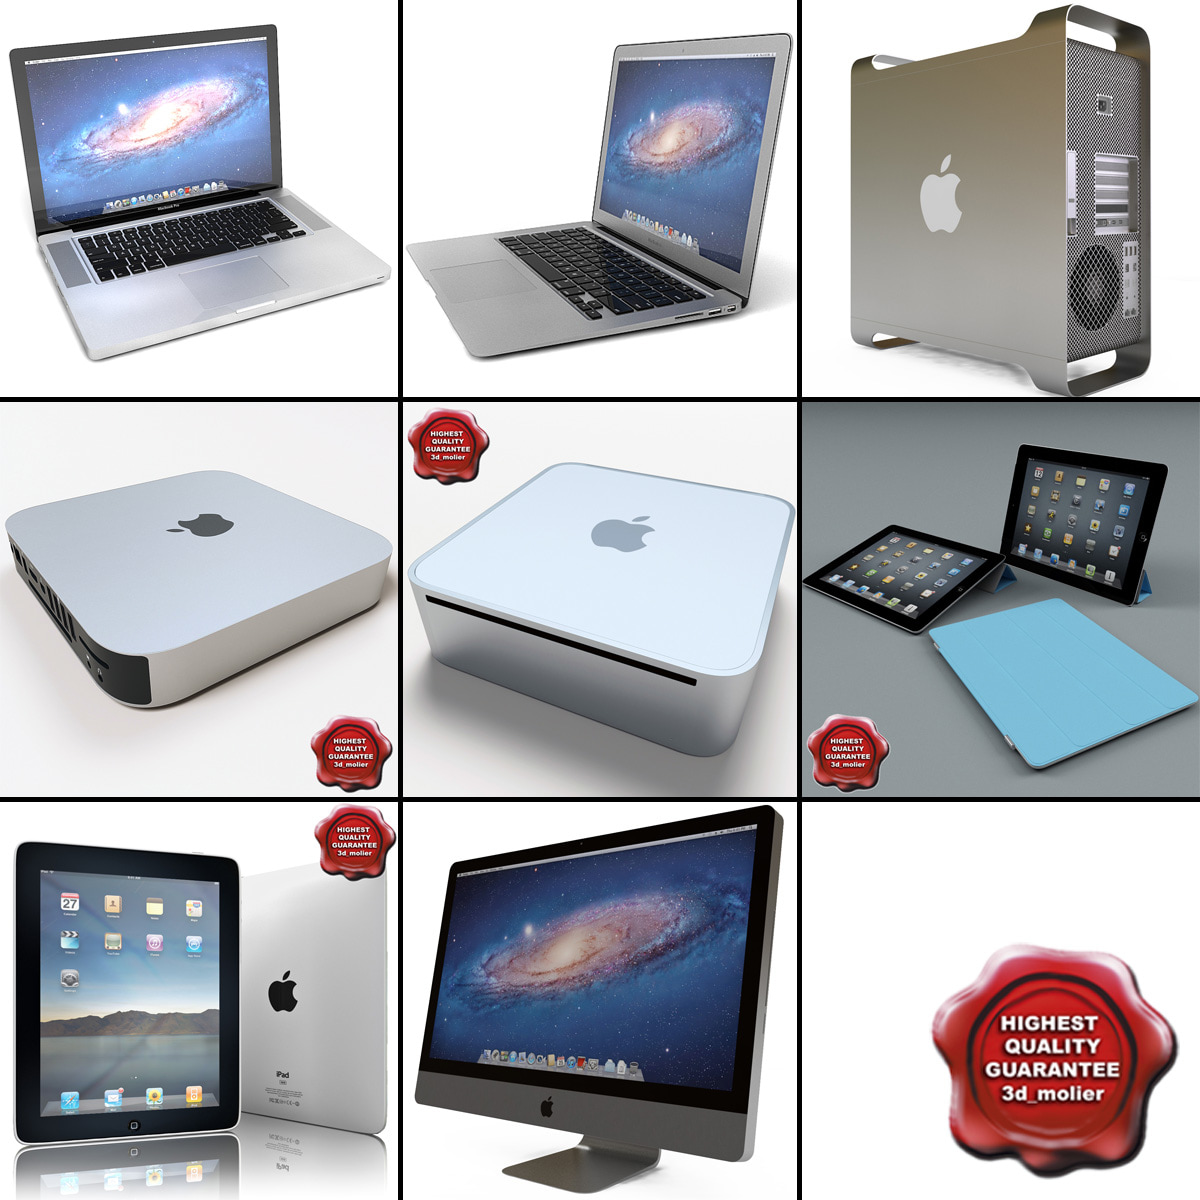 Apple_Computers_Collection_v4_000.jpg